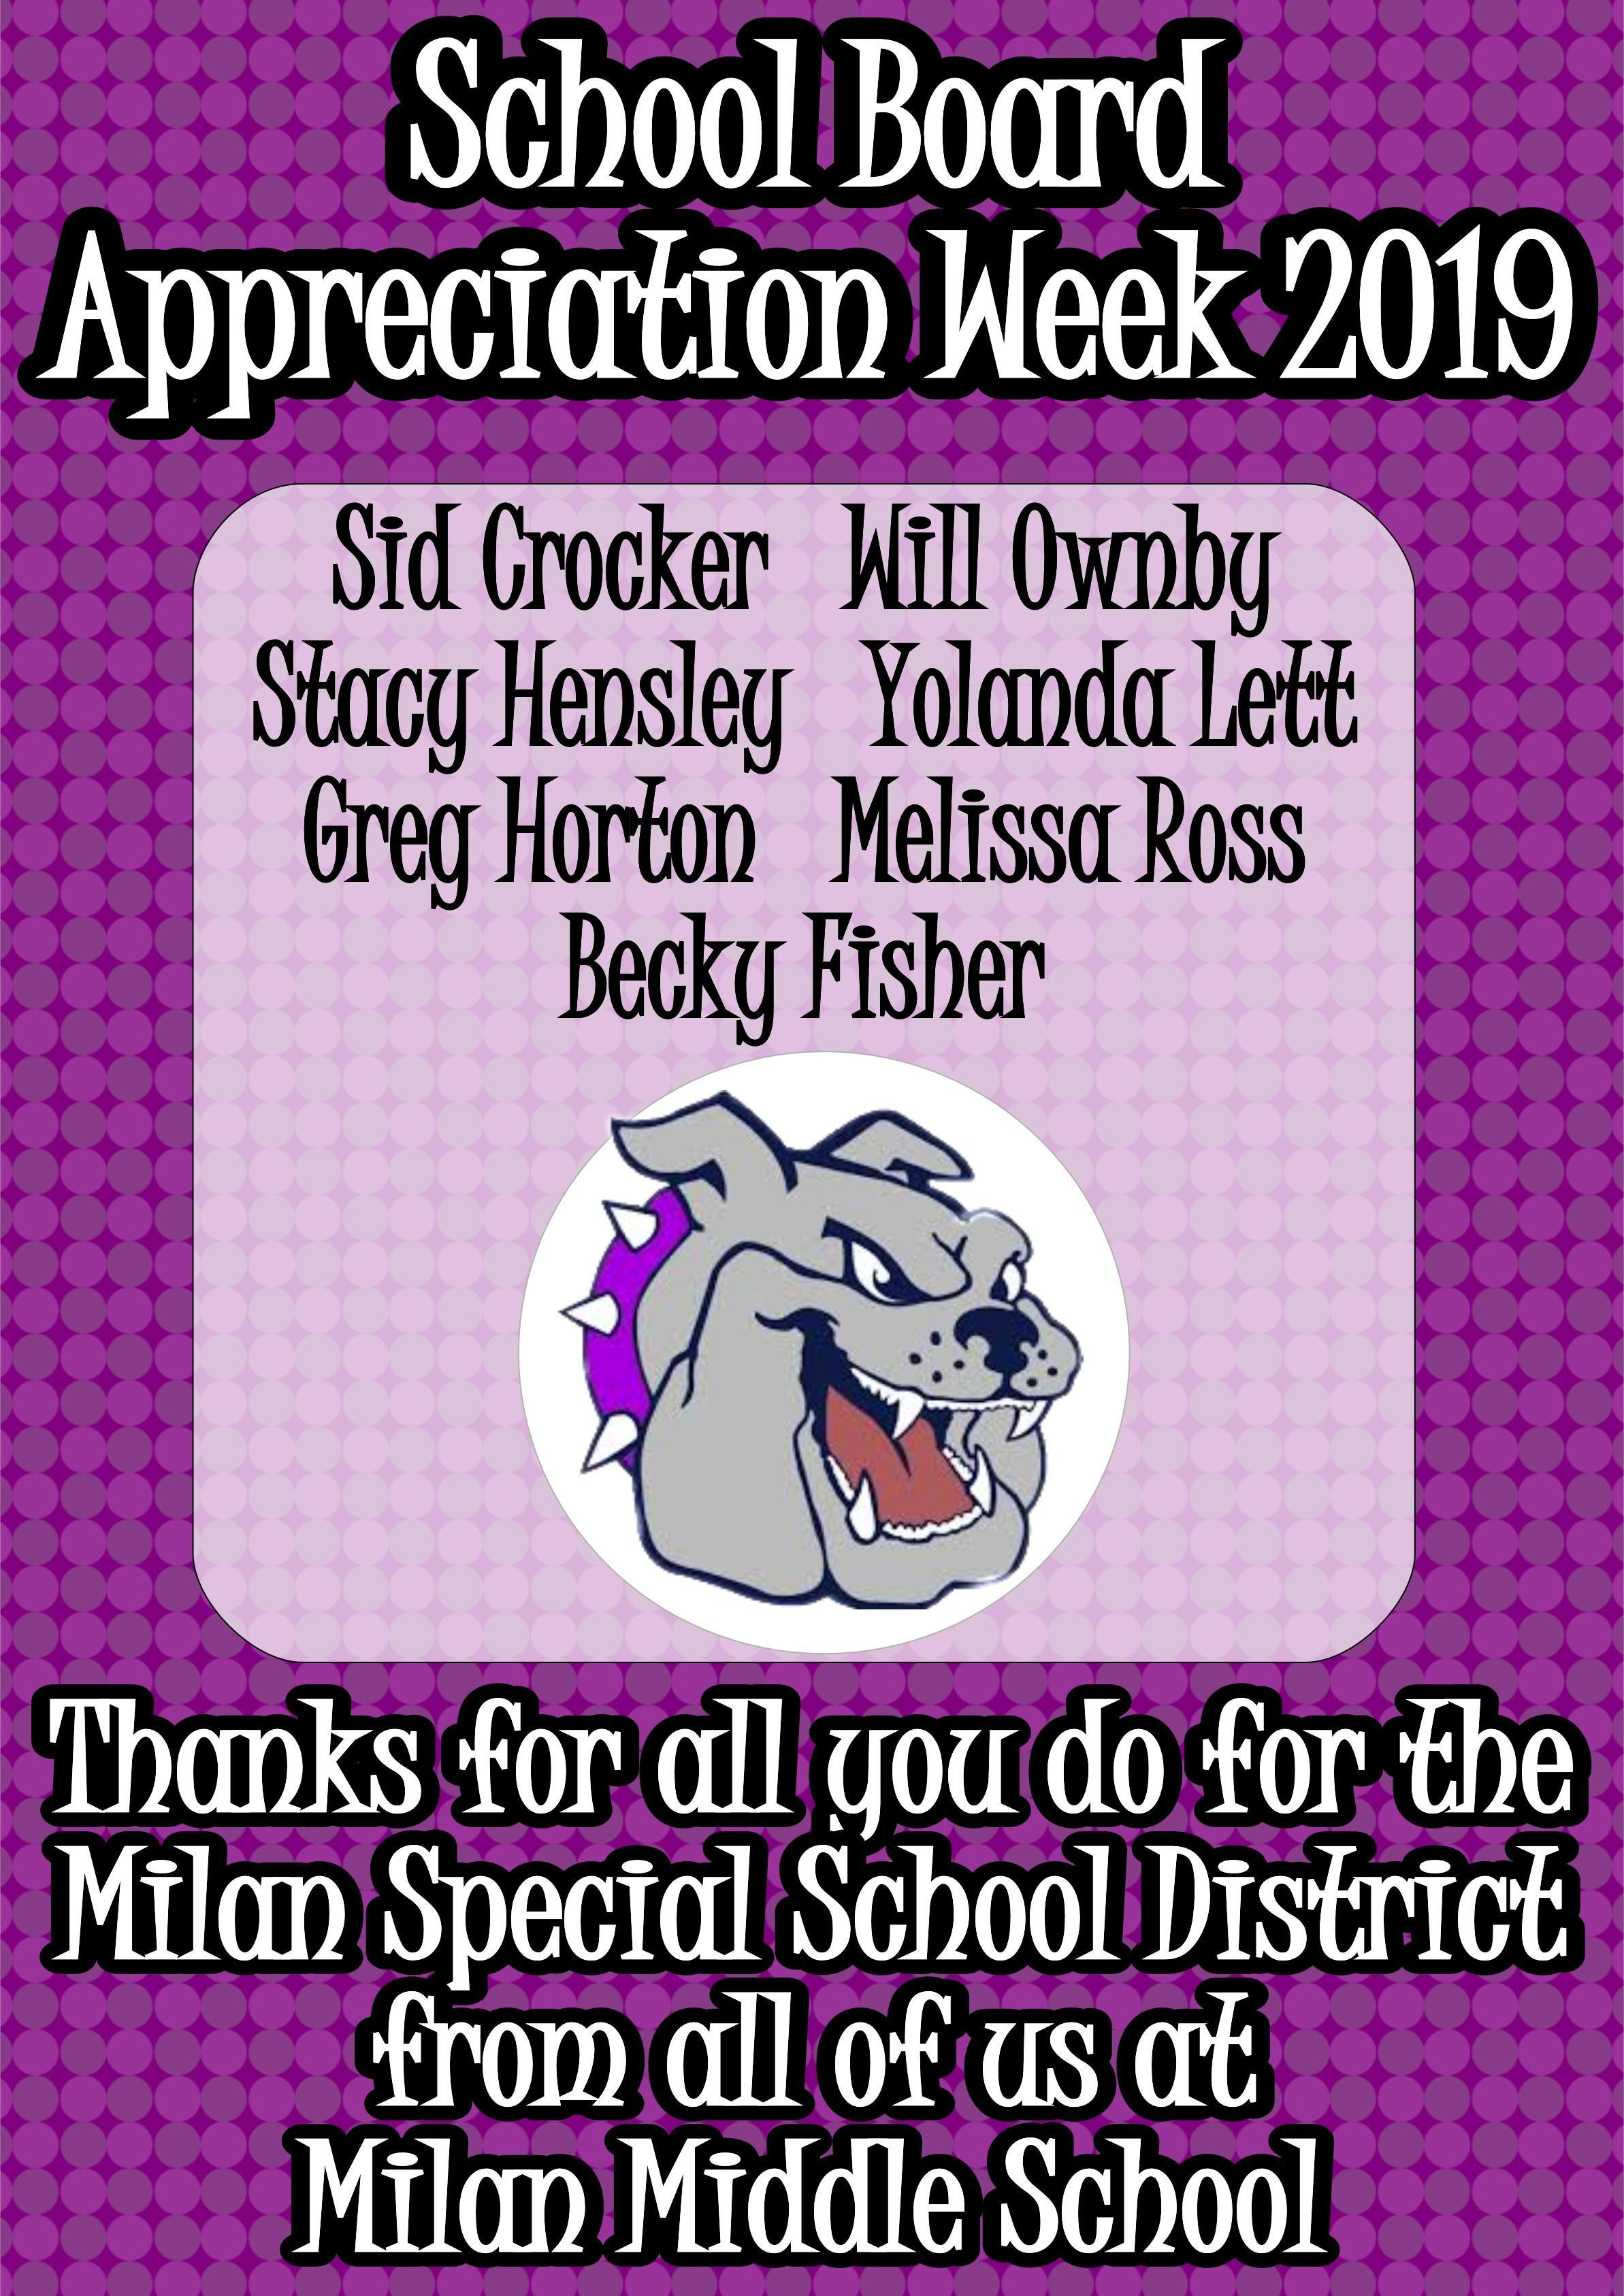 School Board Appreciation Week 2019